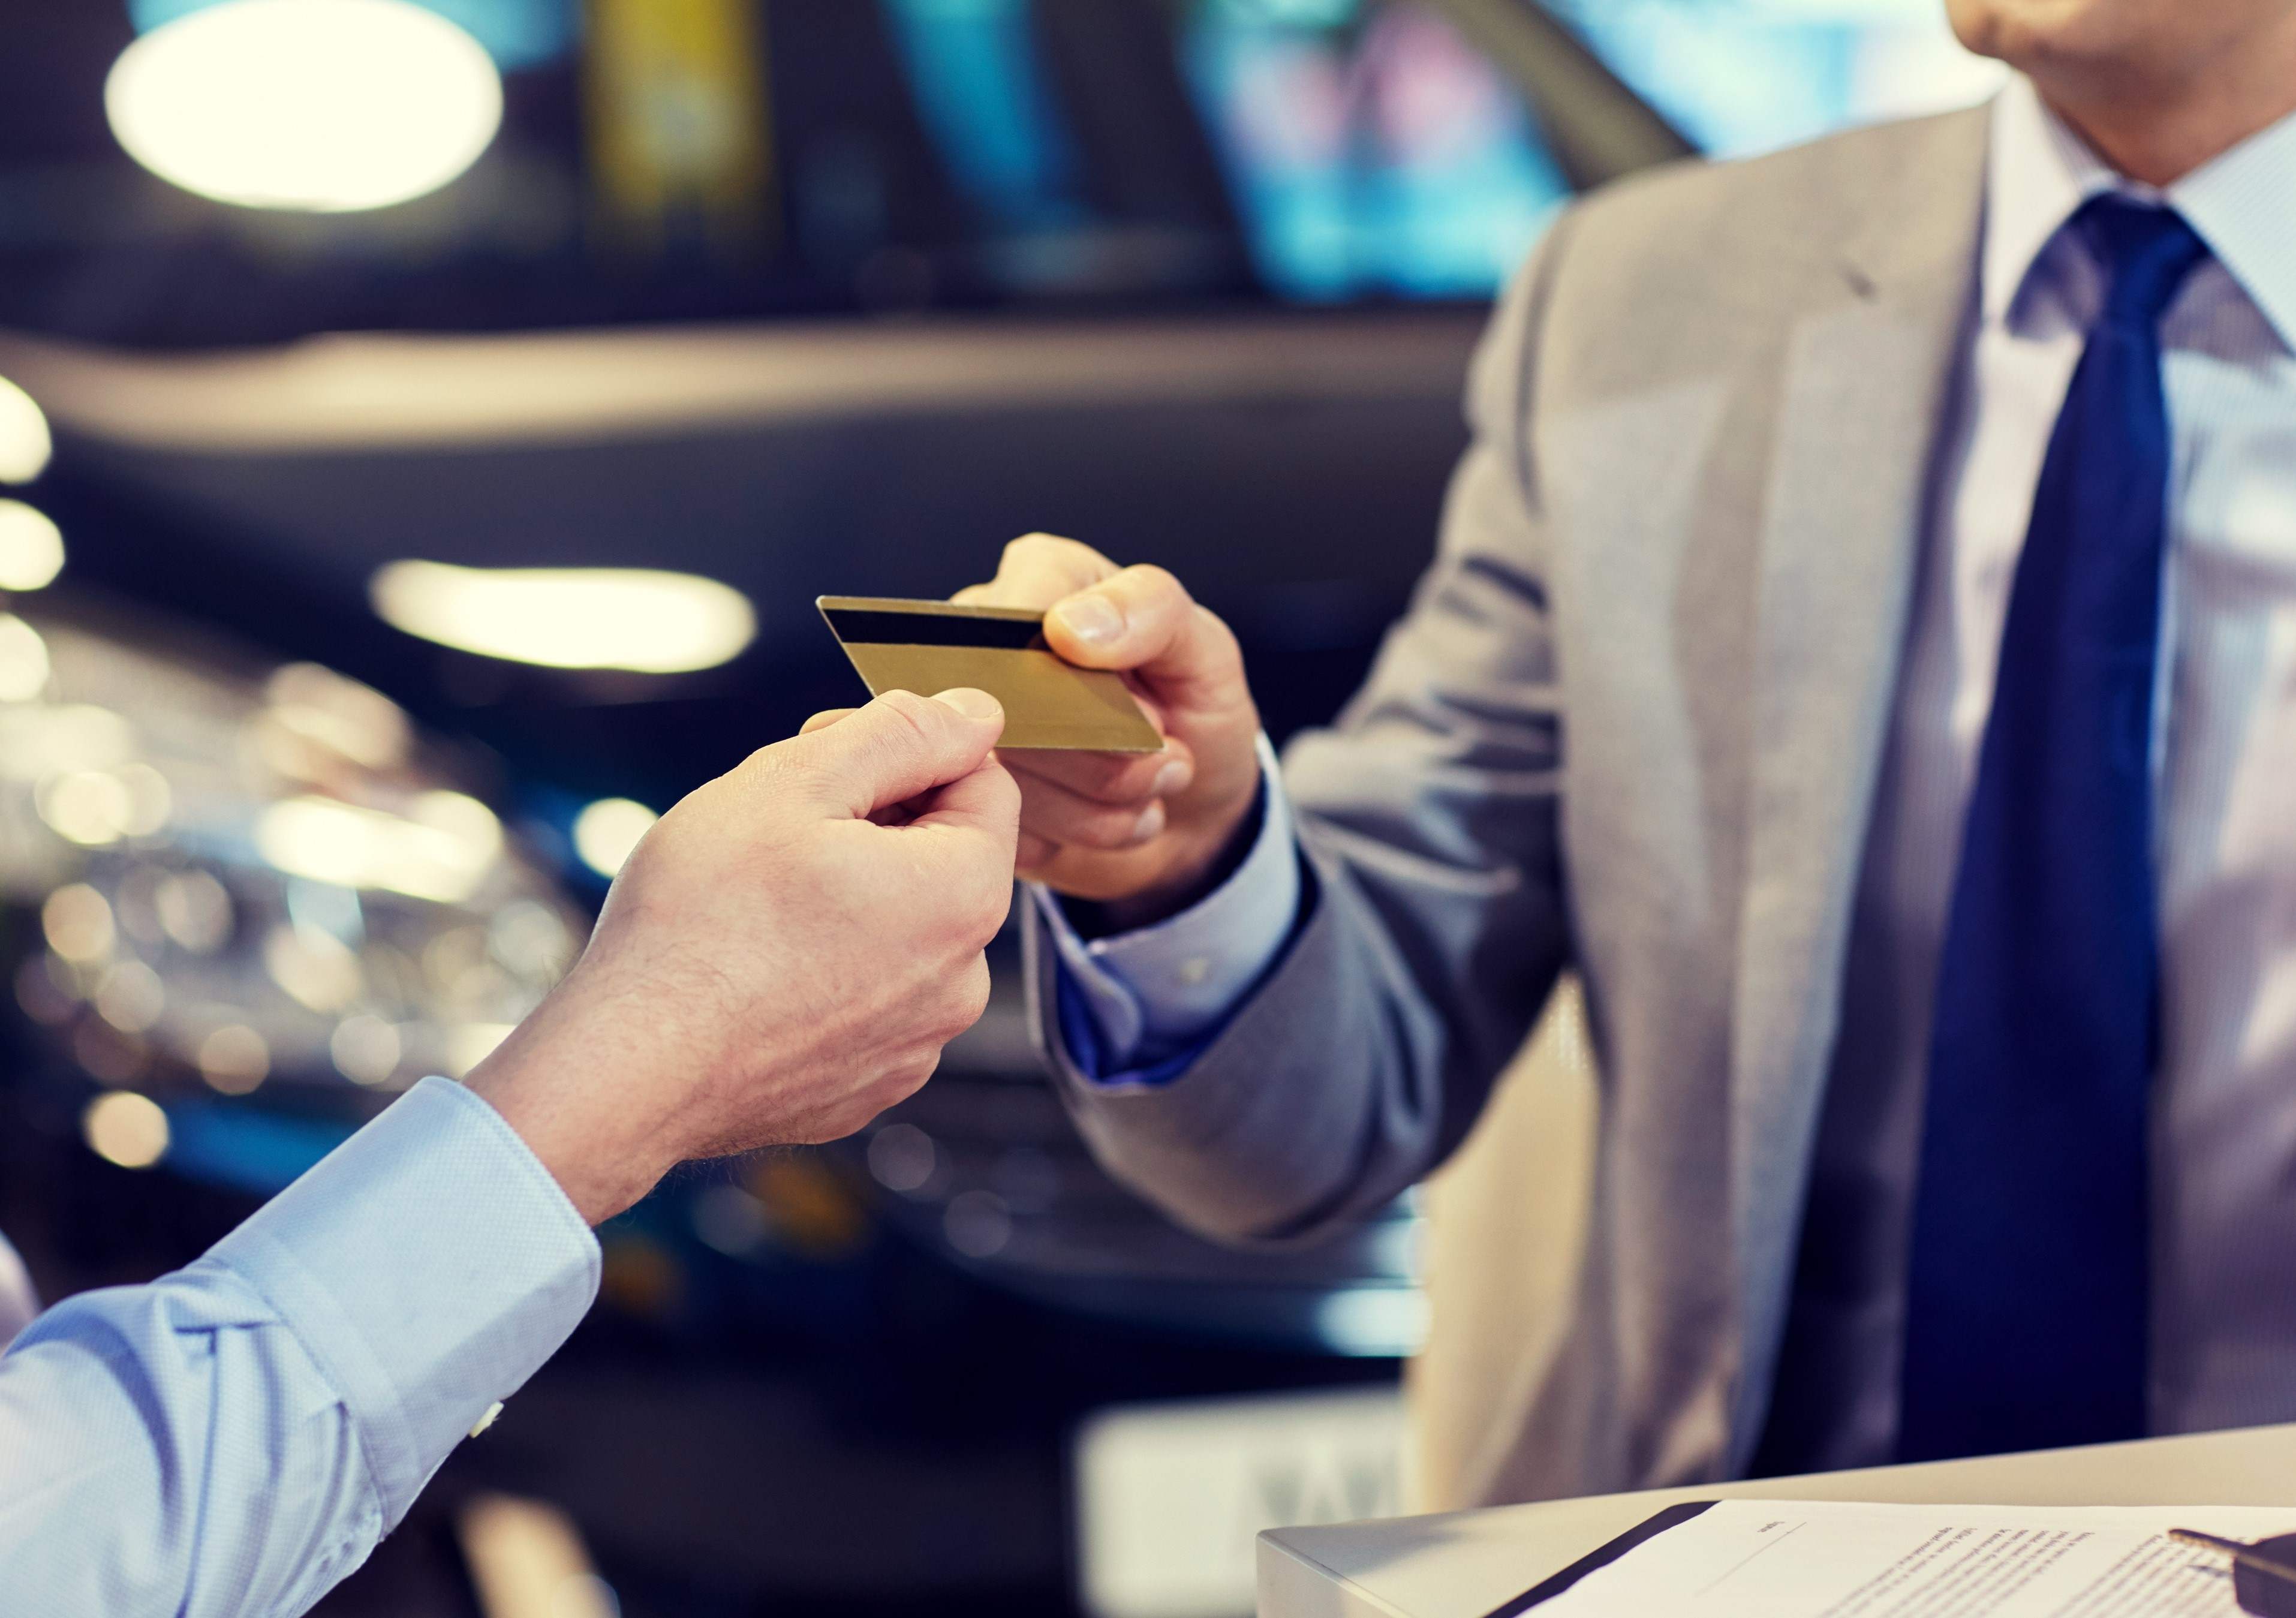 9 Purchases You Should Never Make with a Credit Card